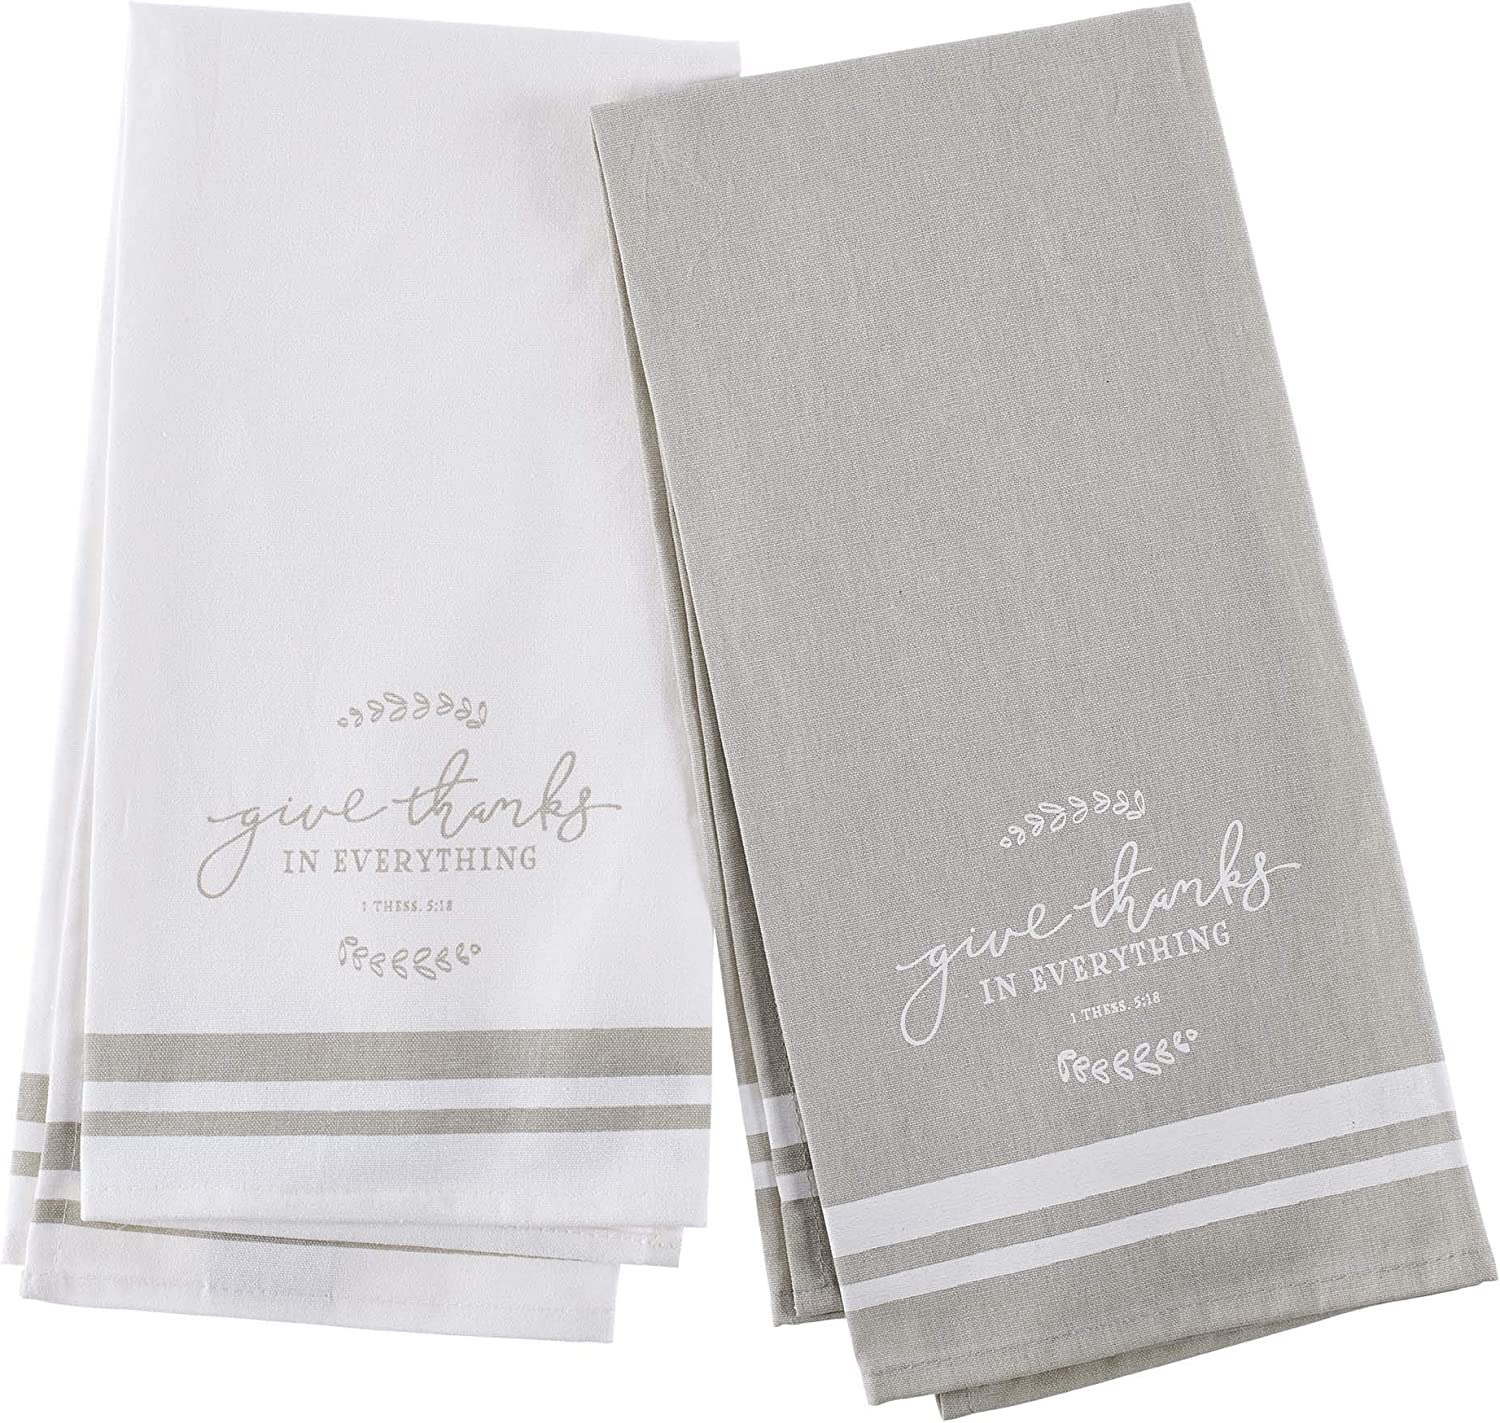 Christian Art Gifts Embroidered Kitchen Tea Towel Set   Give Thanks in Everthying   White/Taupe Flour Sack Cotton Dish Cloth, Give Thanks Collection, Set of 2 Tea Towels